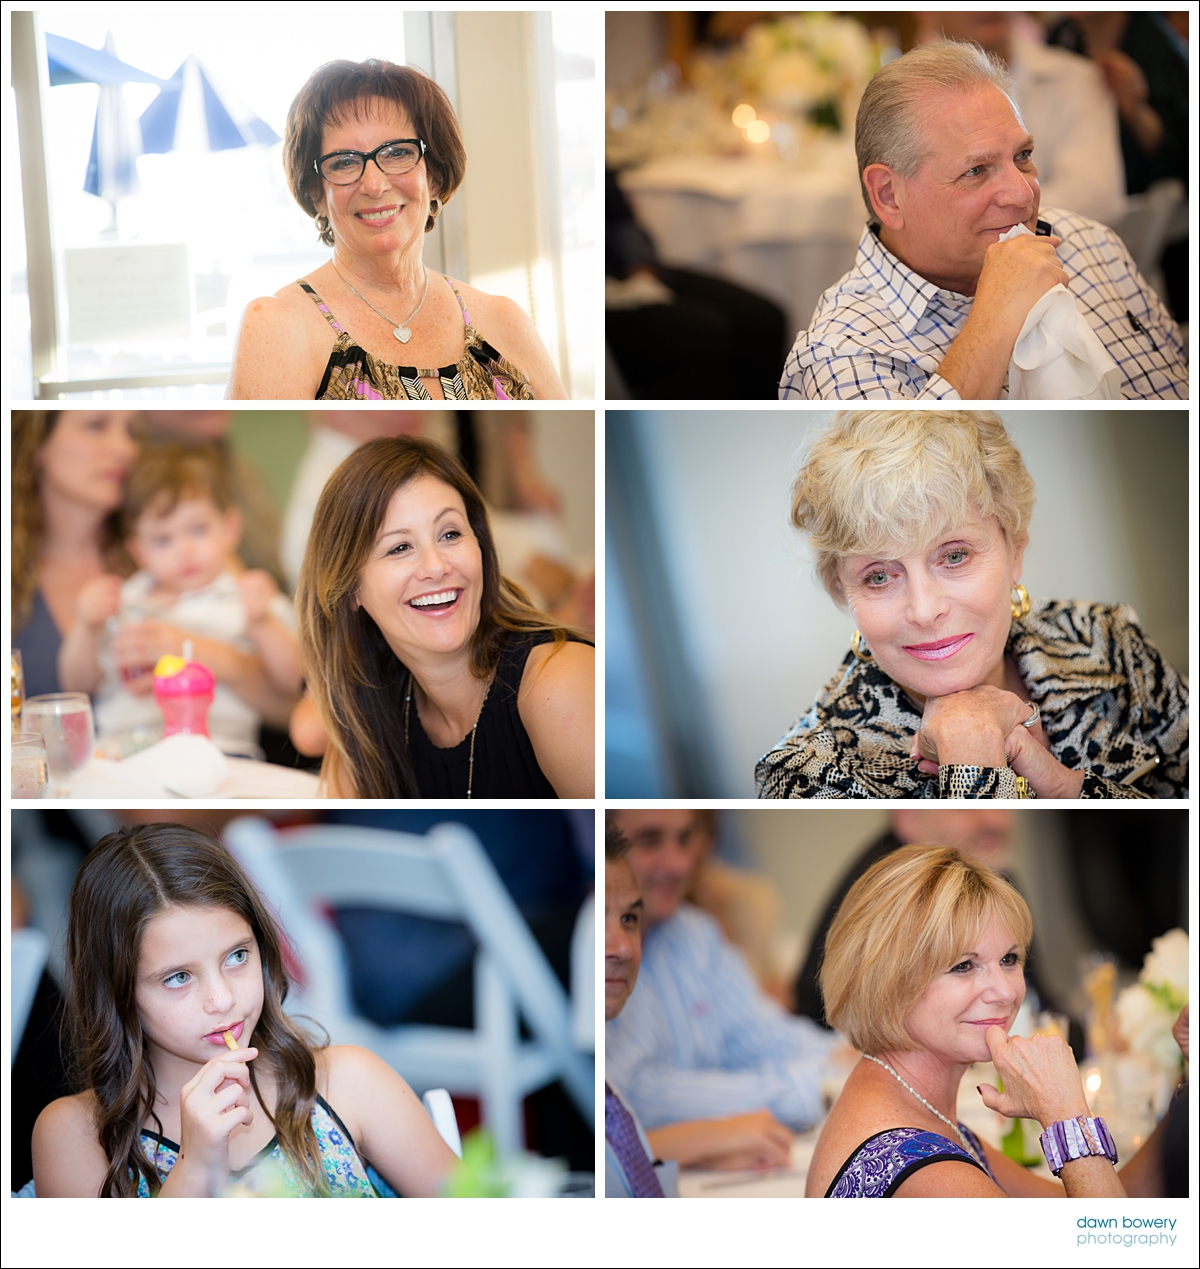 Los Angeles Family Event Photographer guests